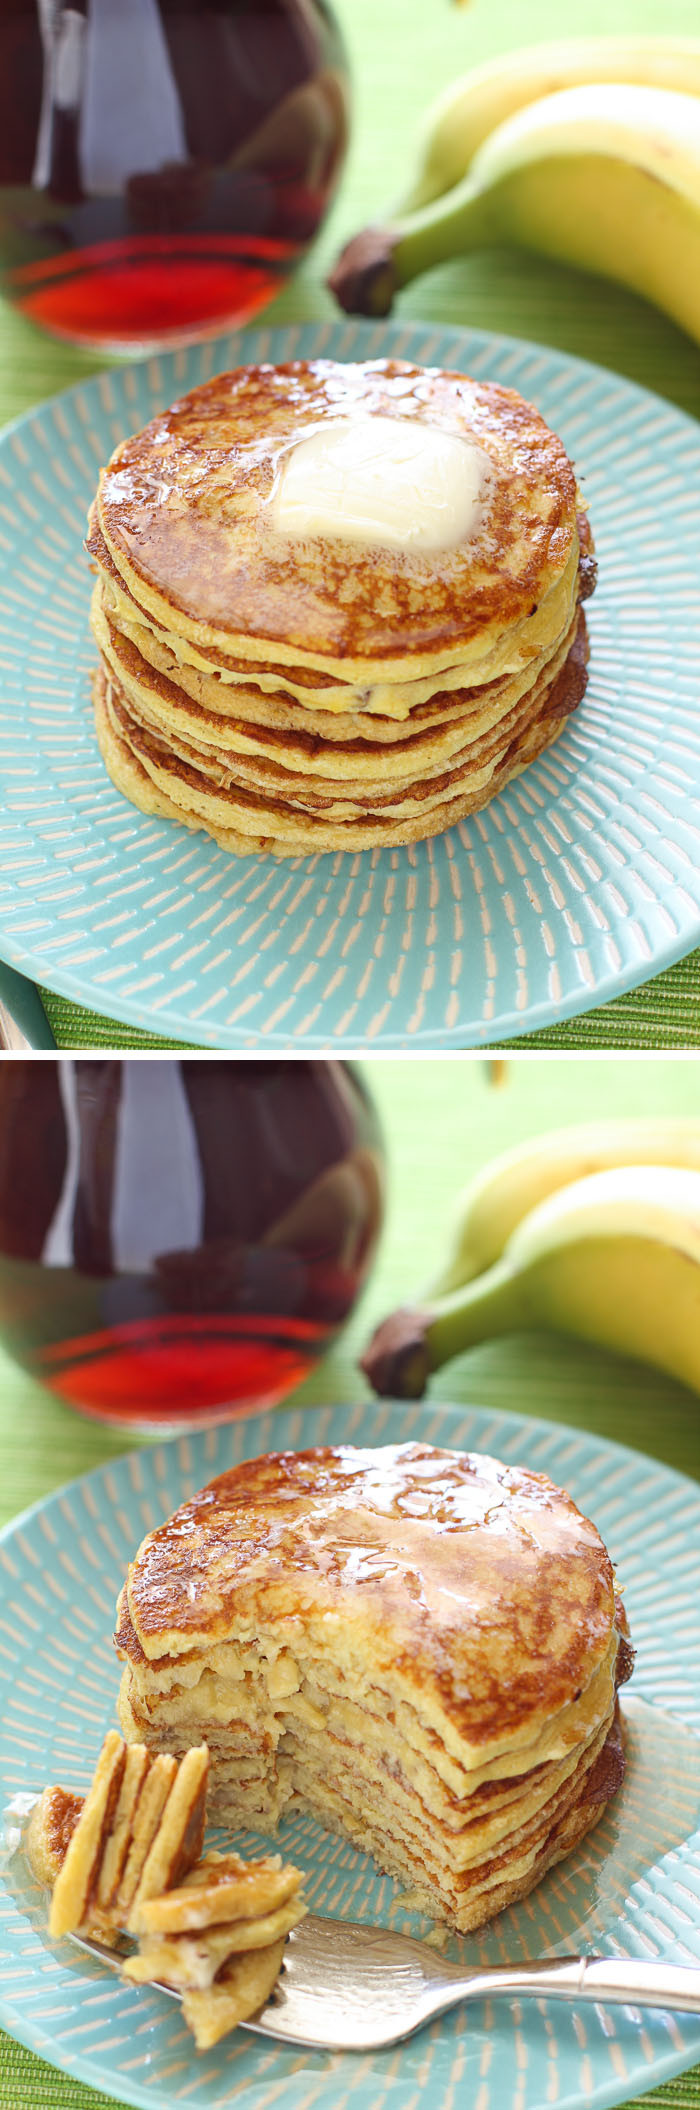 Healthy Banana Pancakes  Four Ingre nt Protein Pancakes and 16 other simple